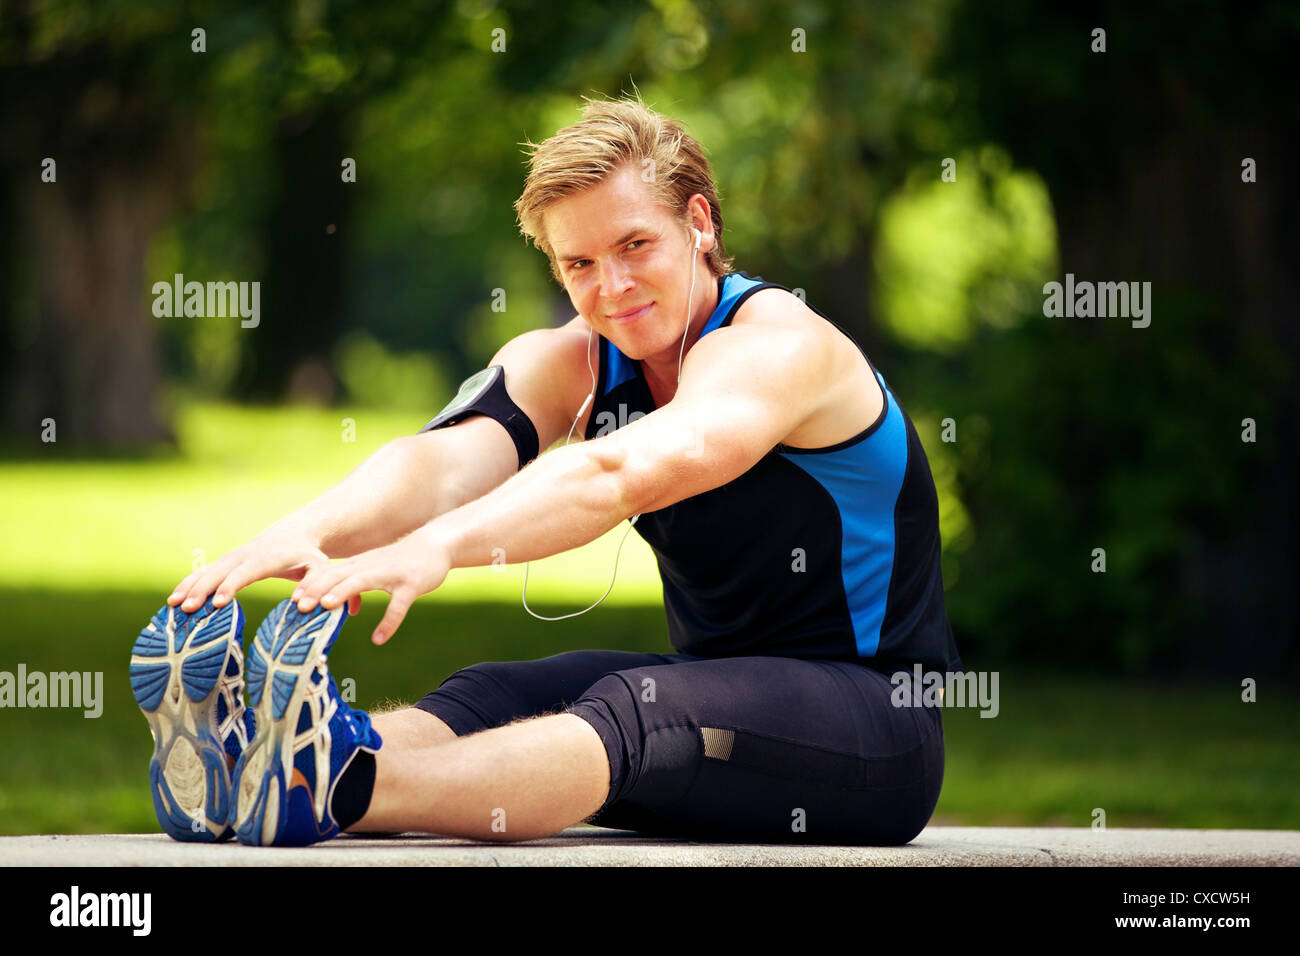 Active man doing his morning exercise at the park - Stock Image